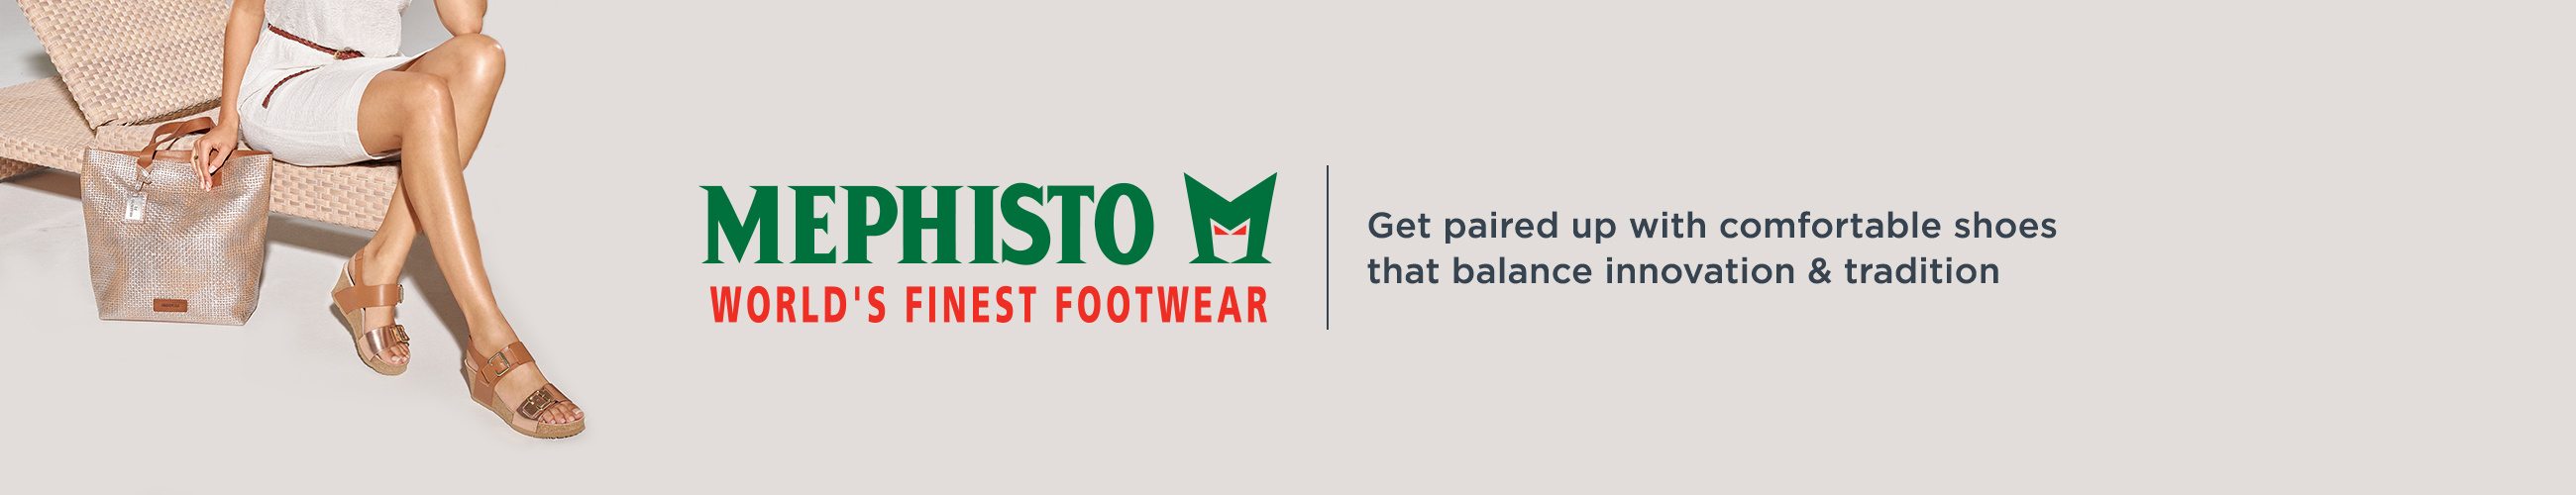 MEPHISTO.  World's Finest Footwear. Get paired up with comfortable shoes that balance innovation & tradition